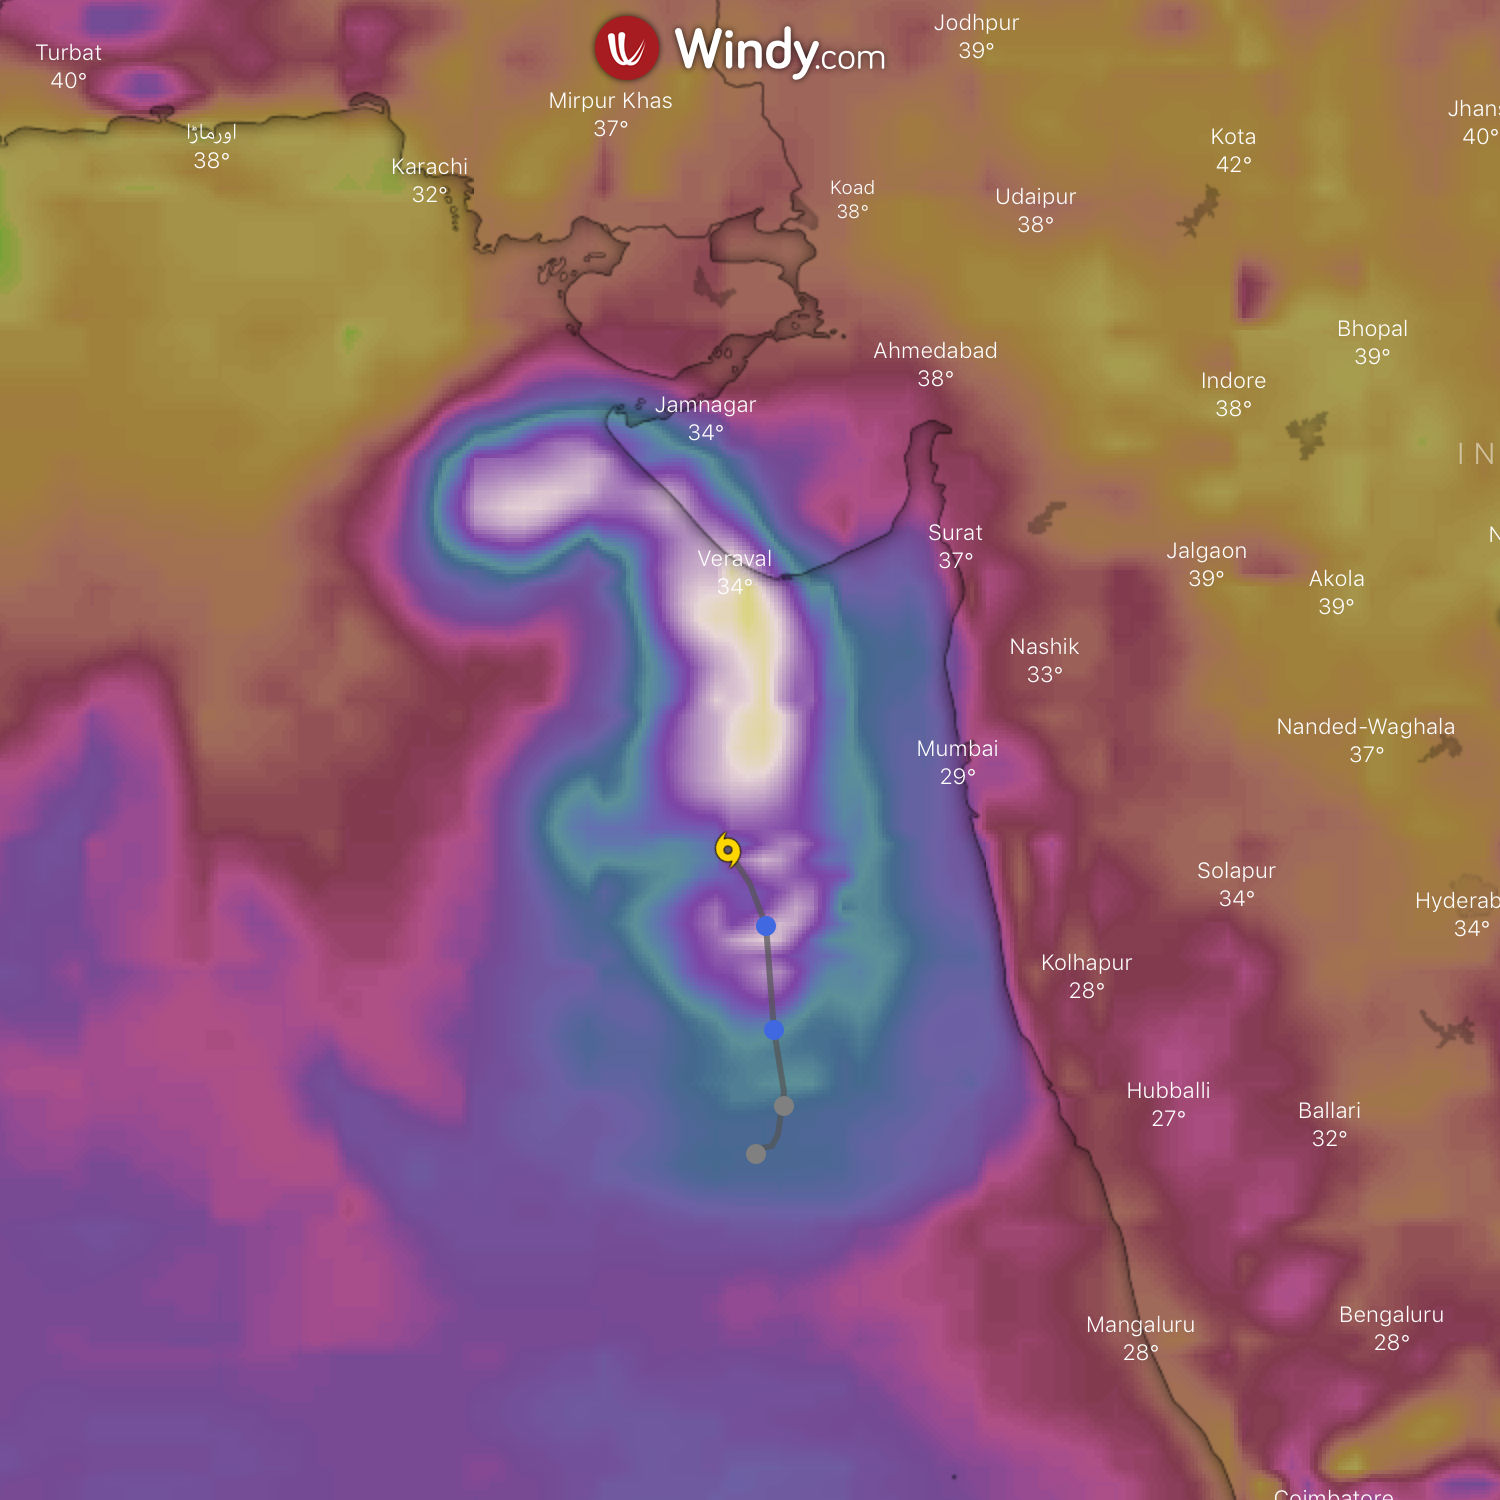 photo: Windy;desc: Actual position of Tropical Cyclone Vayu.;licence:cc;